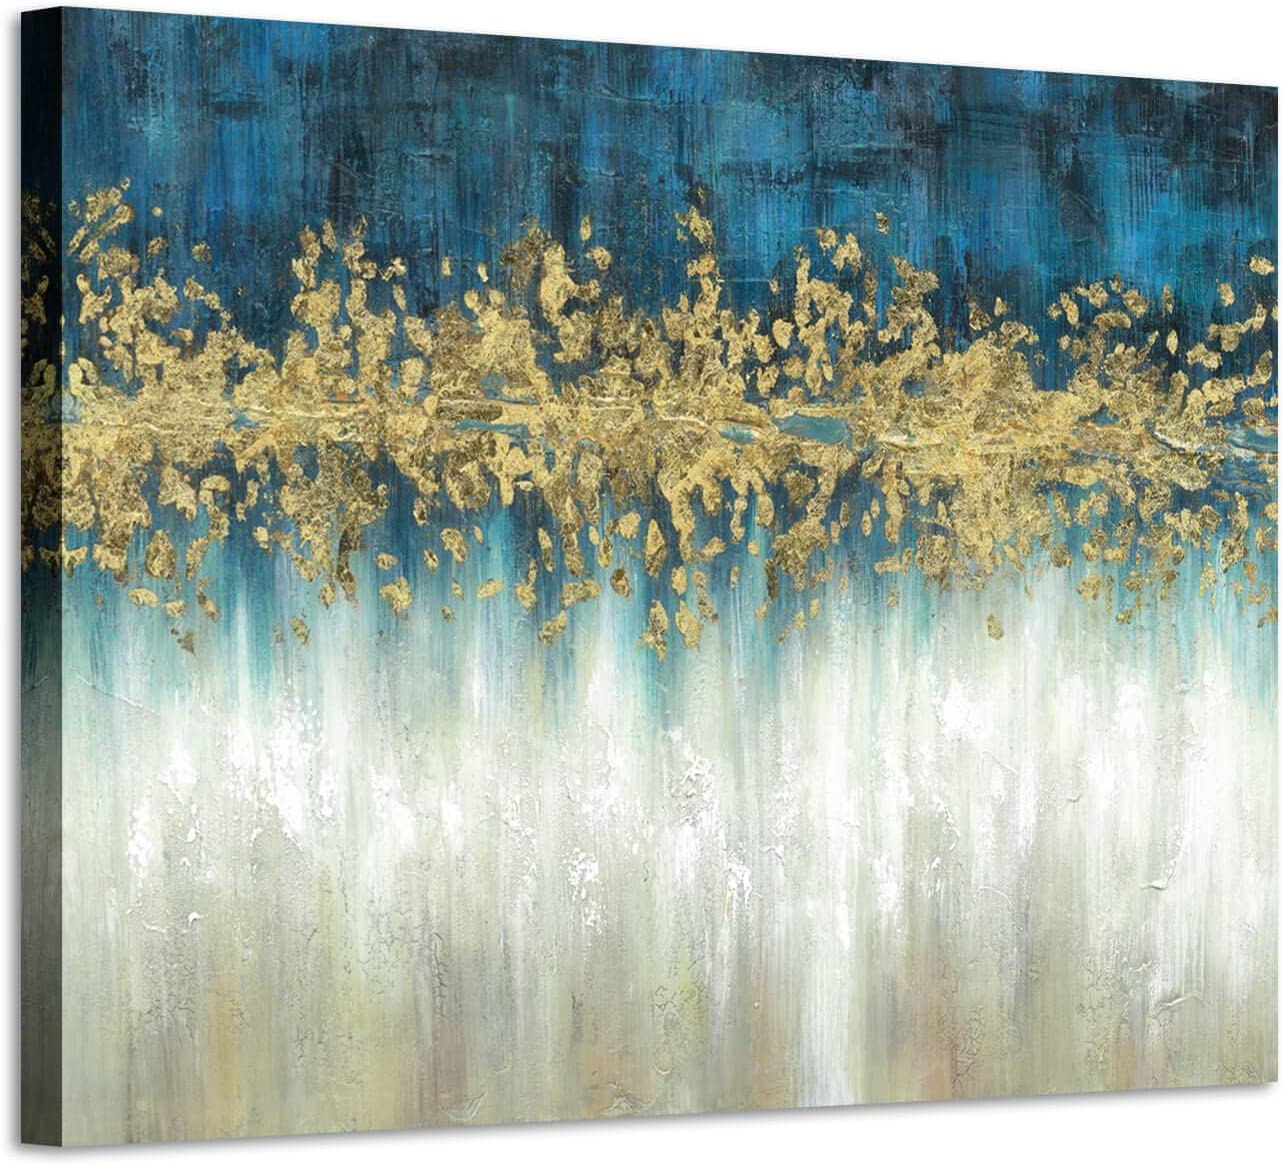 Abstract Modern Wall Art Painting: Gray and Navy Blue Canvas Picture Gold Foil Artwork for Living Room (24'' x 18'' x 1 Panel)